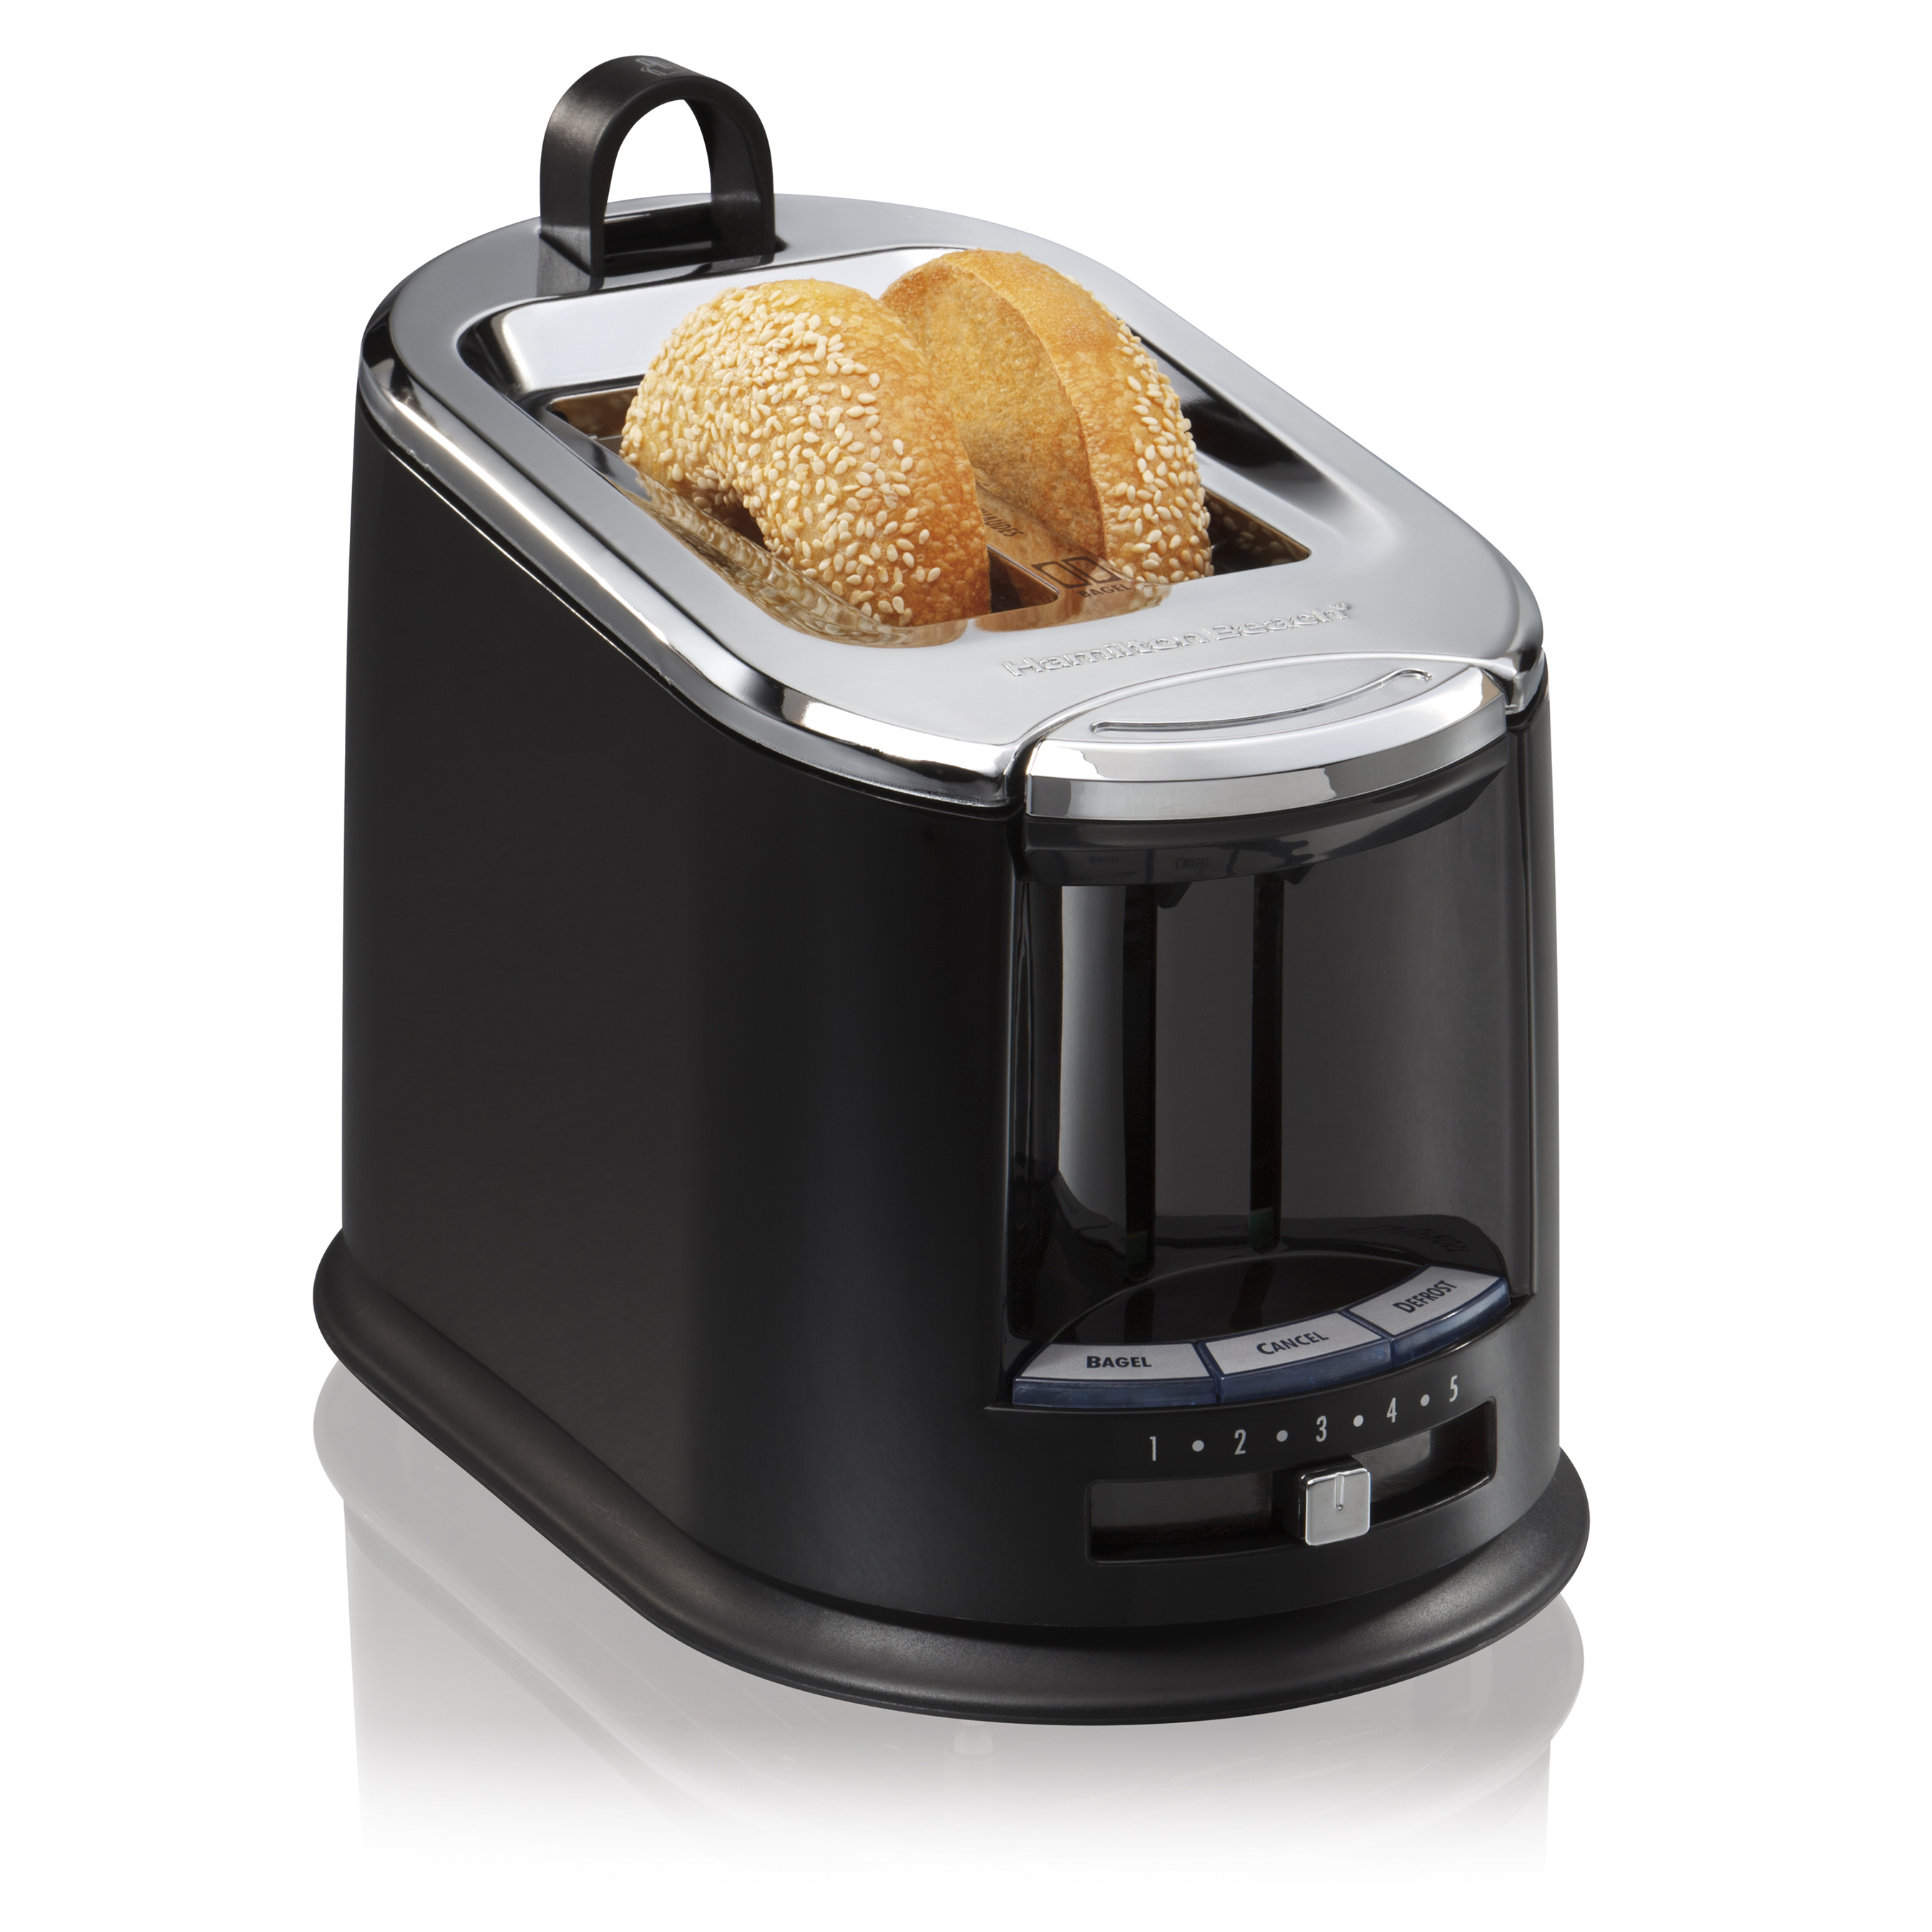 Hamilton Beach Smart Toast 2-Slice Toaster